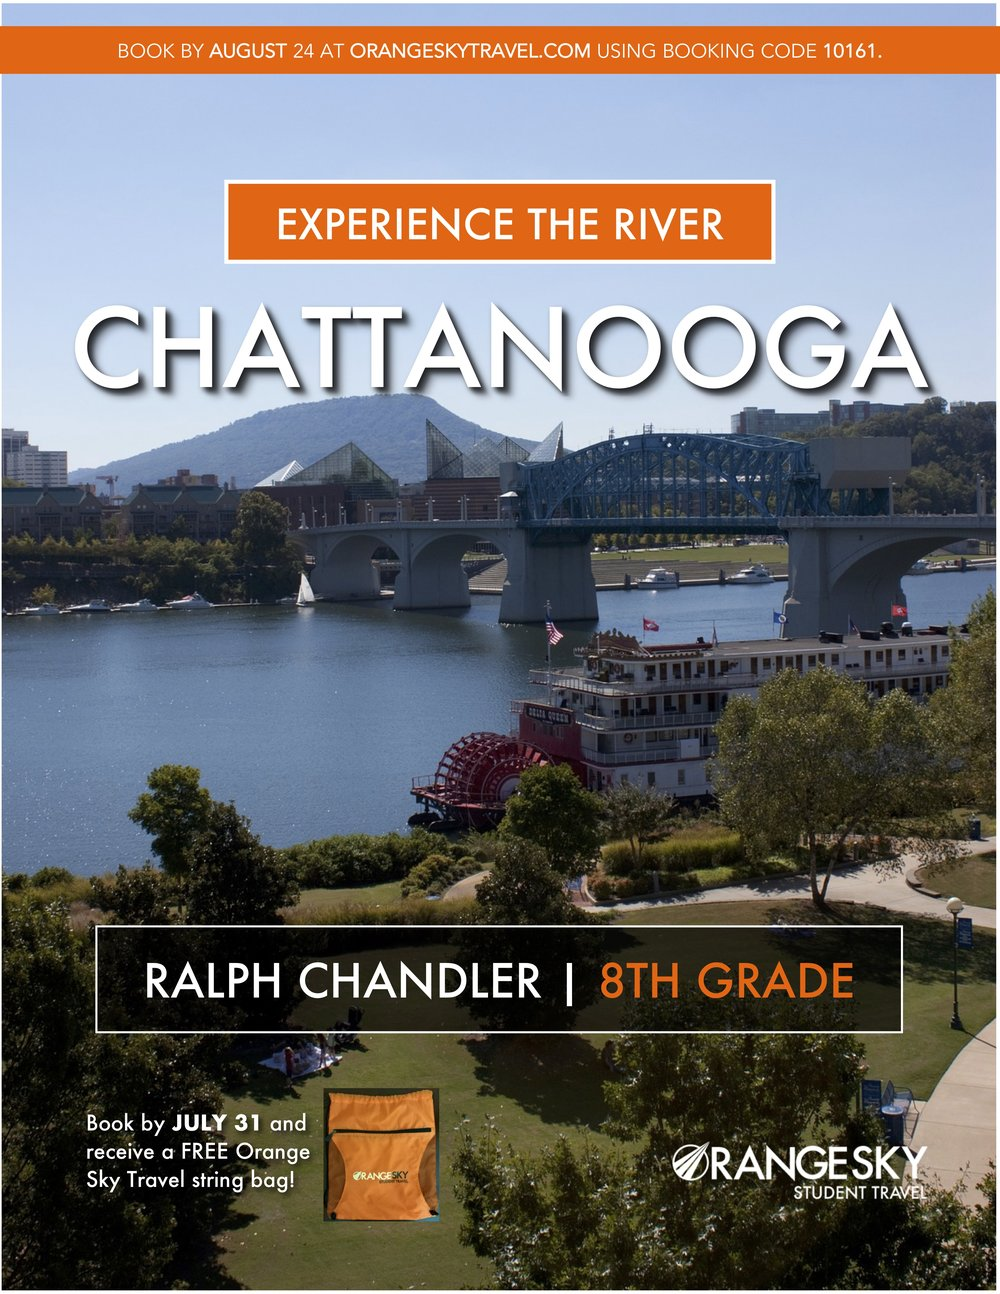 Ralph Chandler 8th Grade  - Chattanooga Flyer 2018 (dragged).jpg